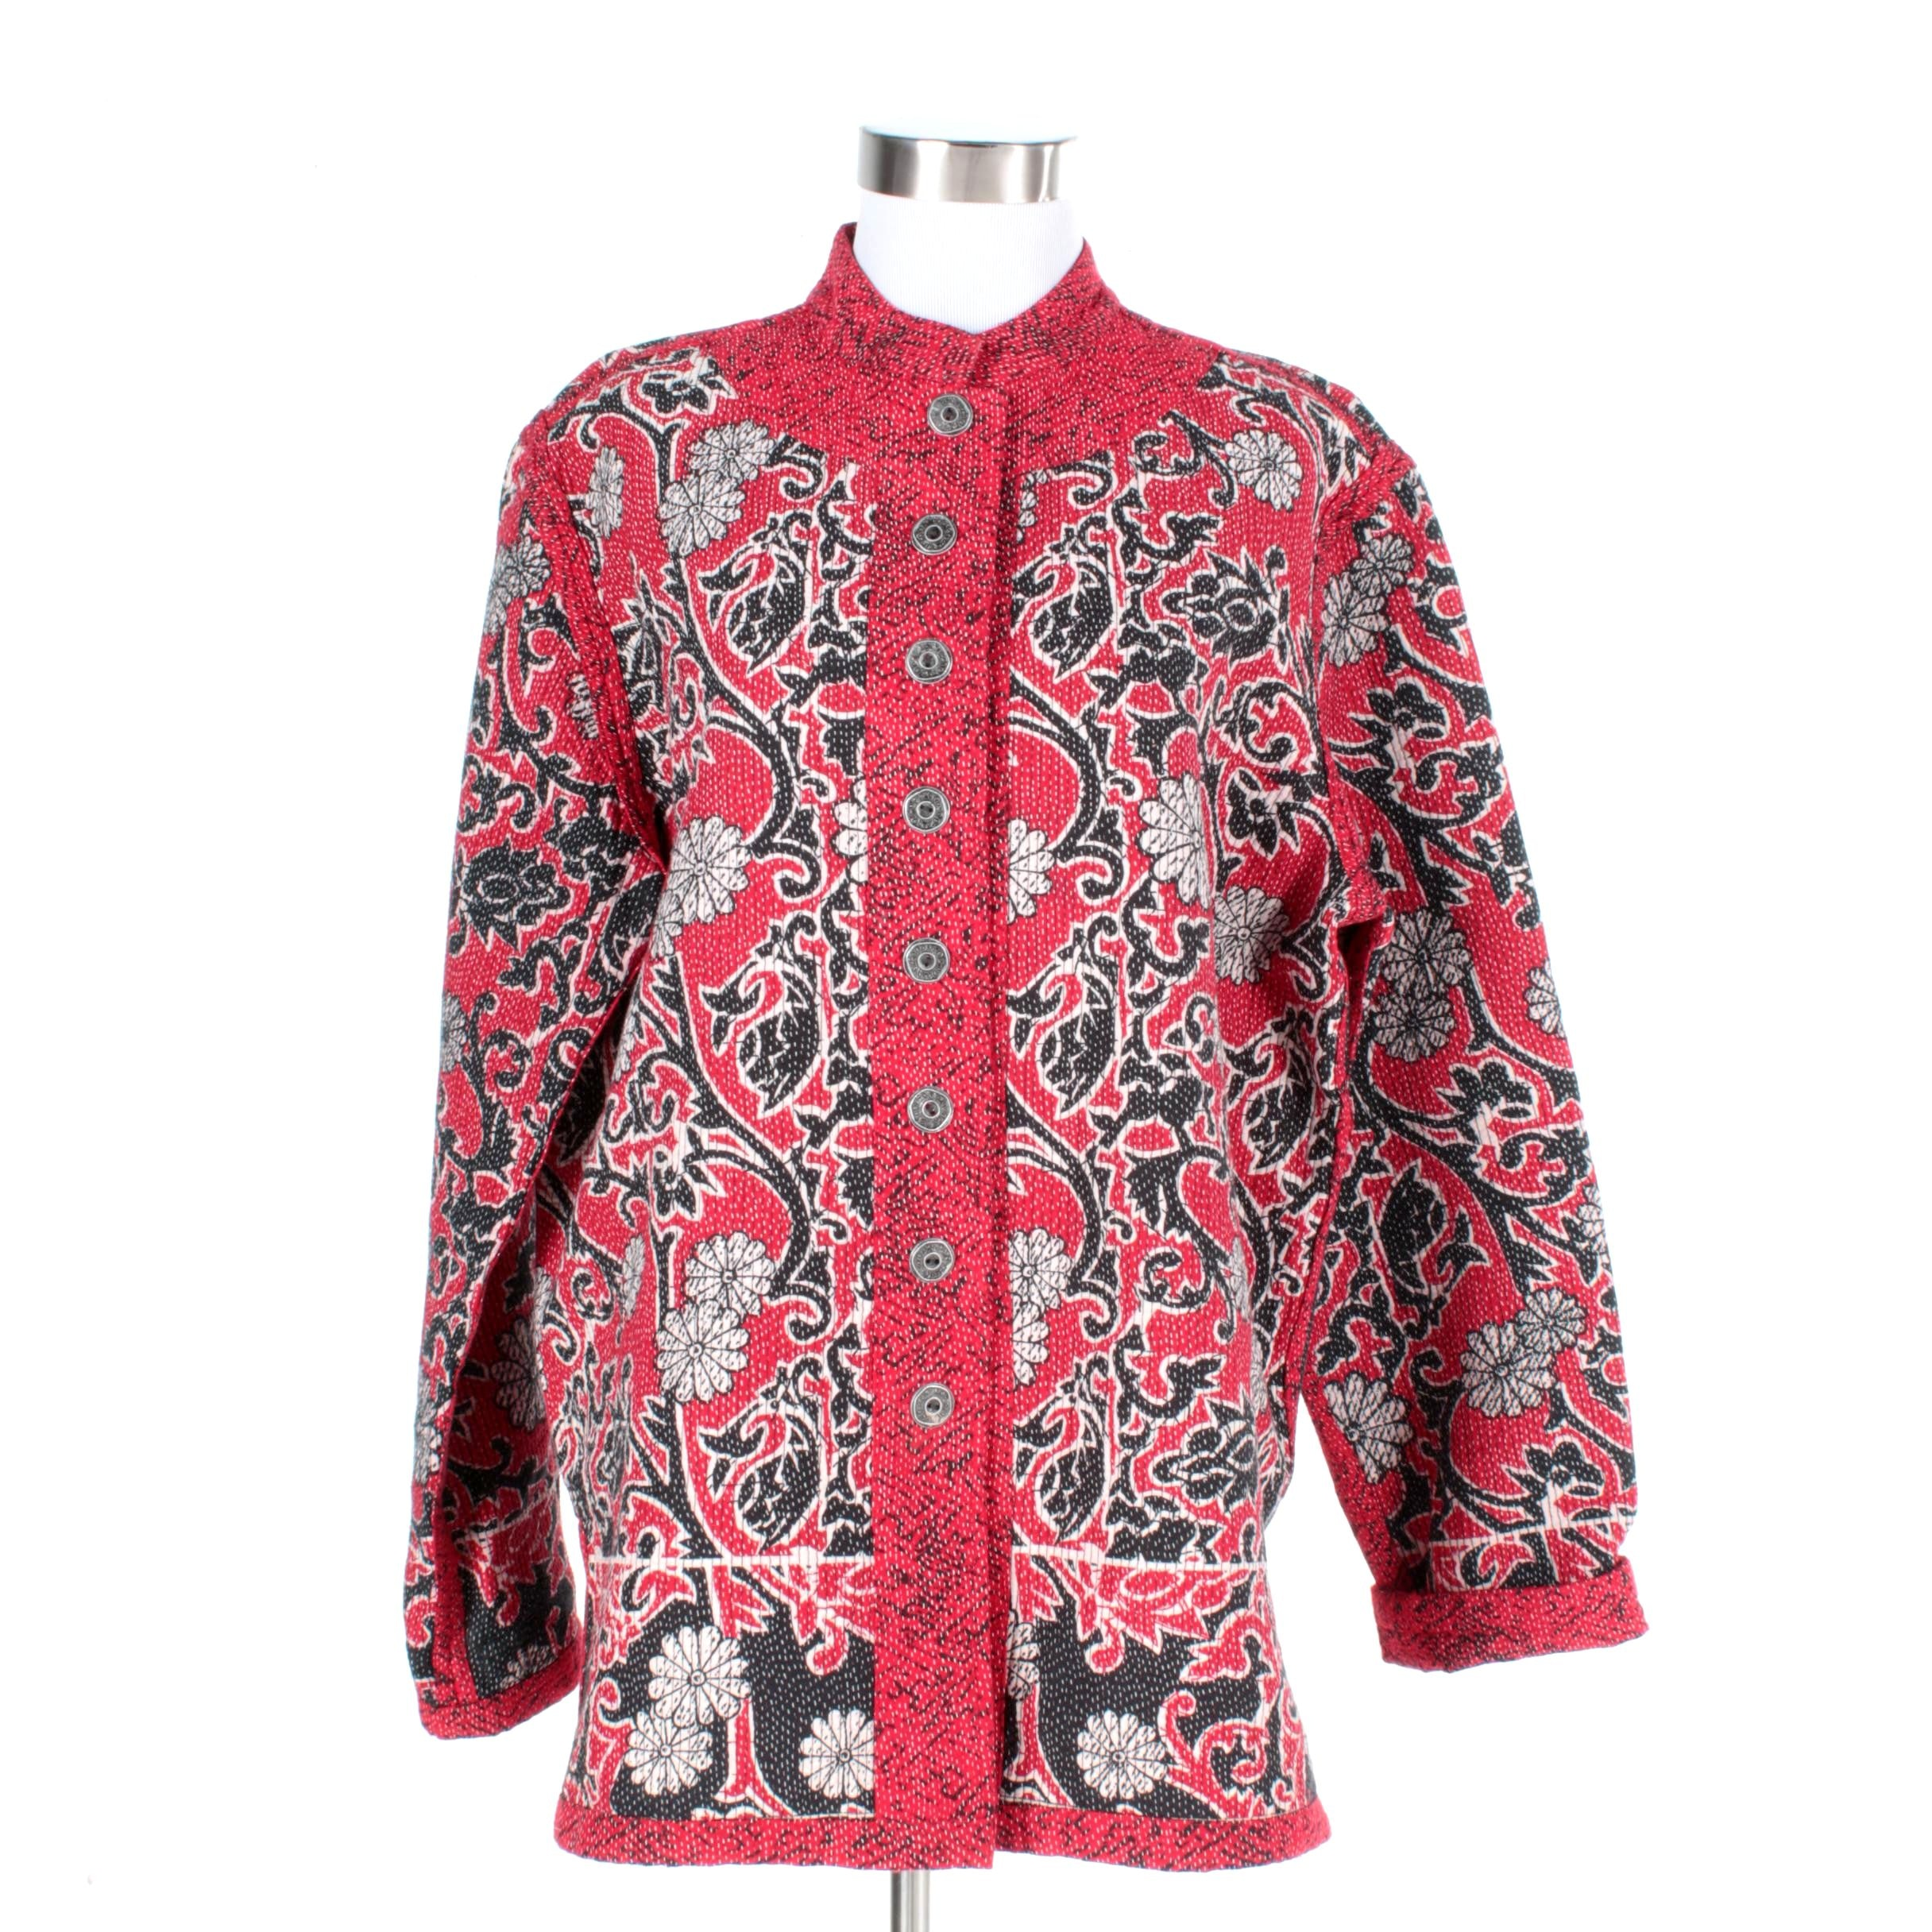 Women's Quilted Jacket in Scrolling Florals